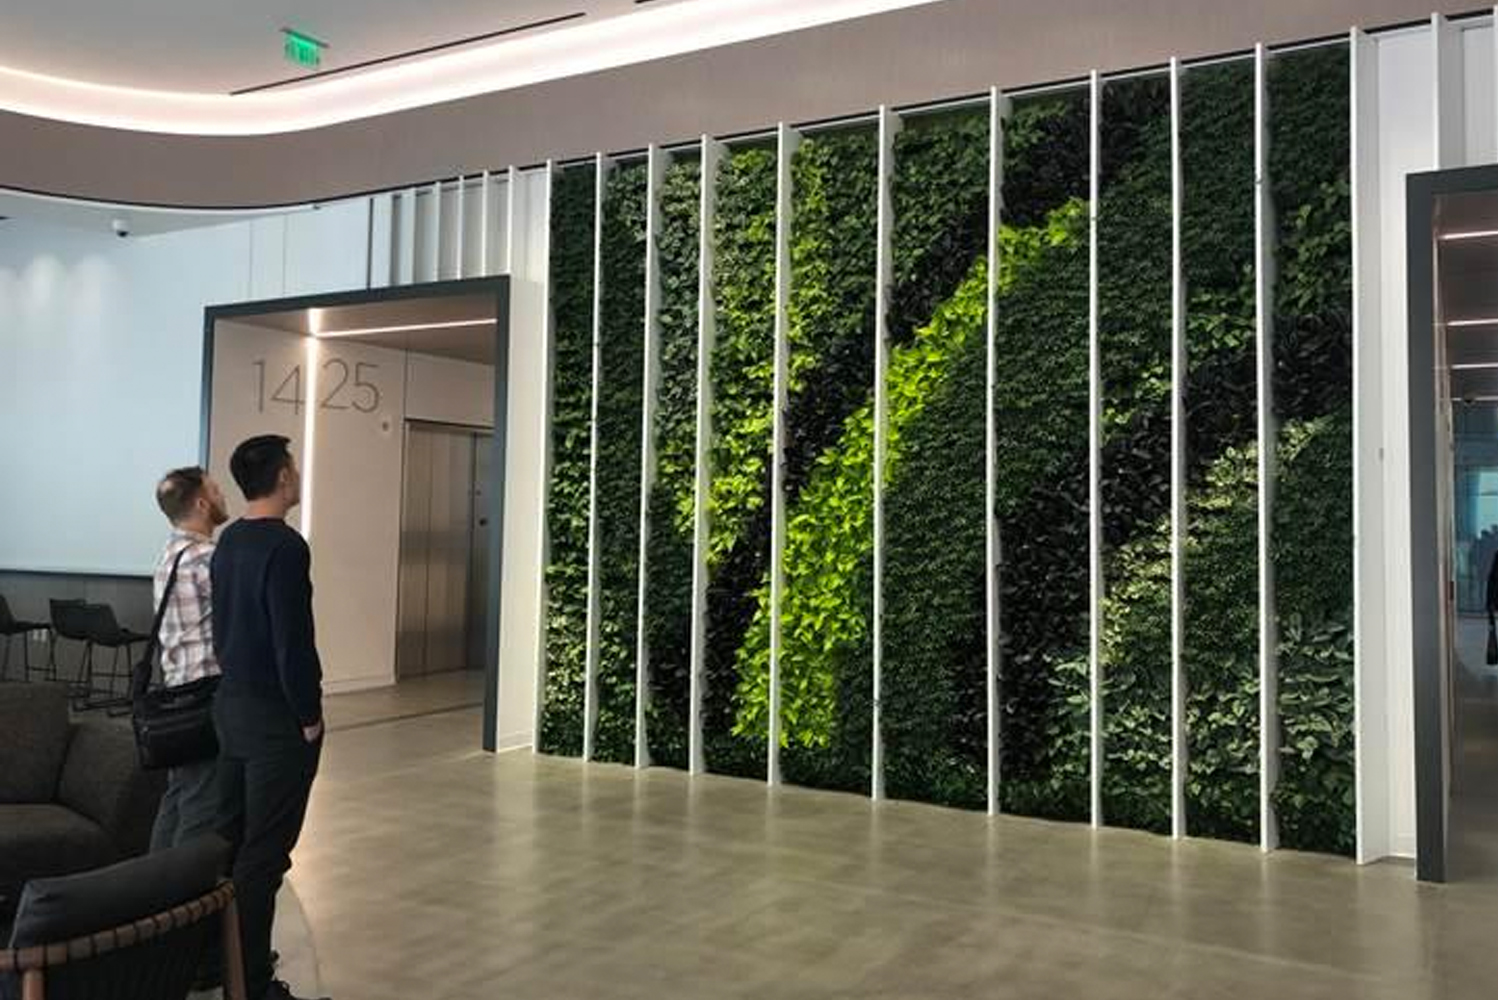 GSky Plant Systems Inc., which designs and produces interior and exterior green walls, installed the 500th Versa Wall indoor green wall system.